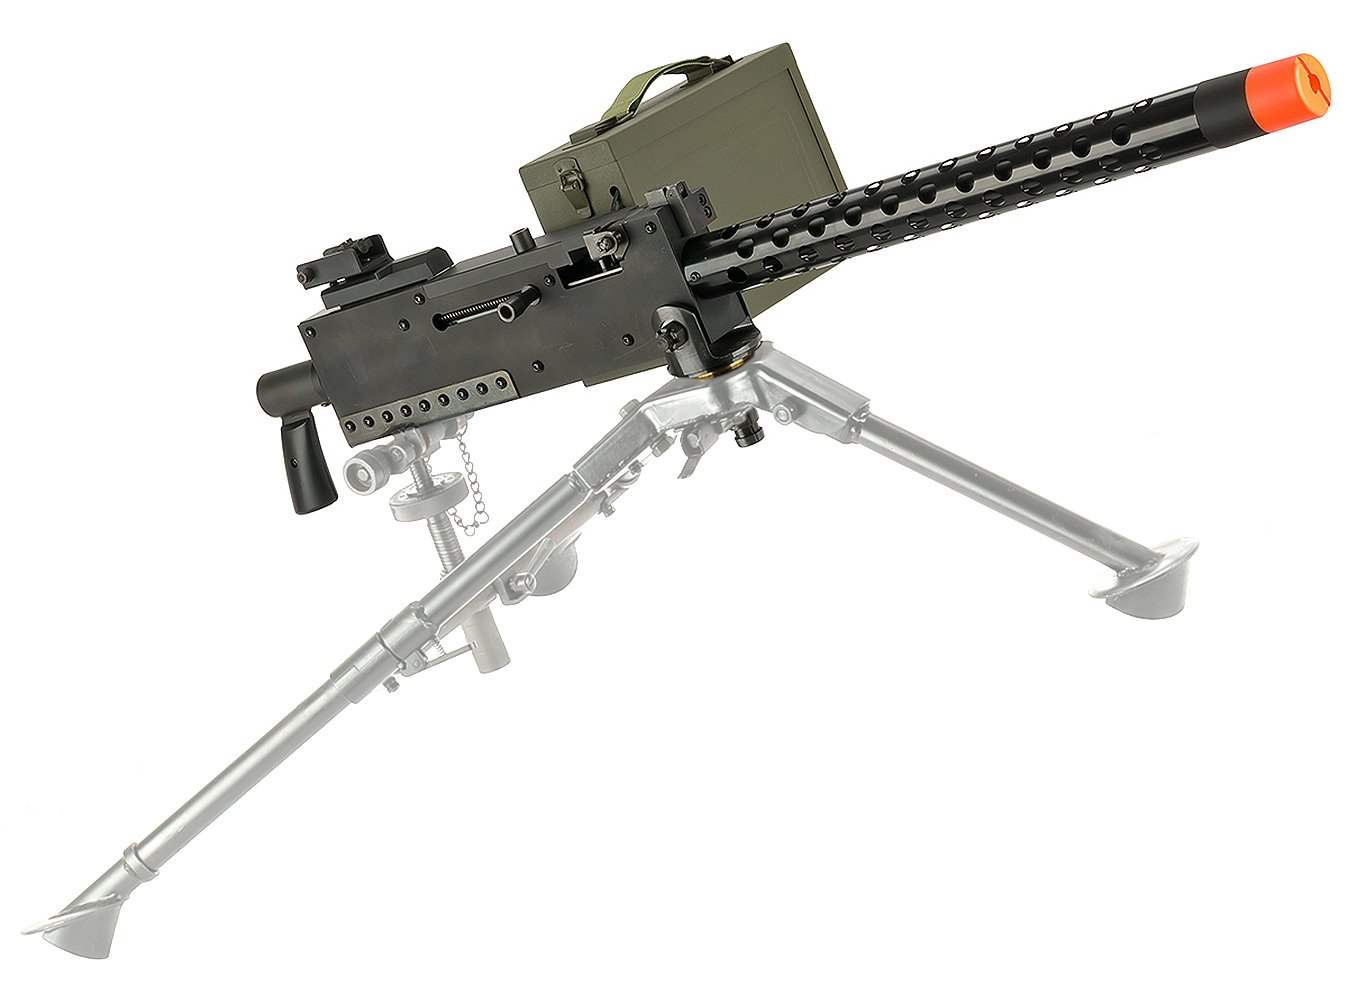 Evike EMG M1919 WWII American Automatic Squad Support Weapon Airsoft AEG - Gun Only - (32930) by Evike